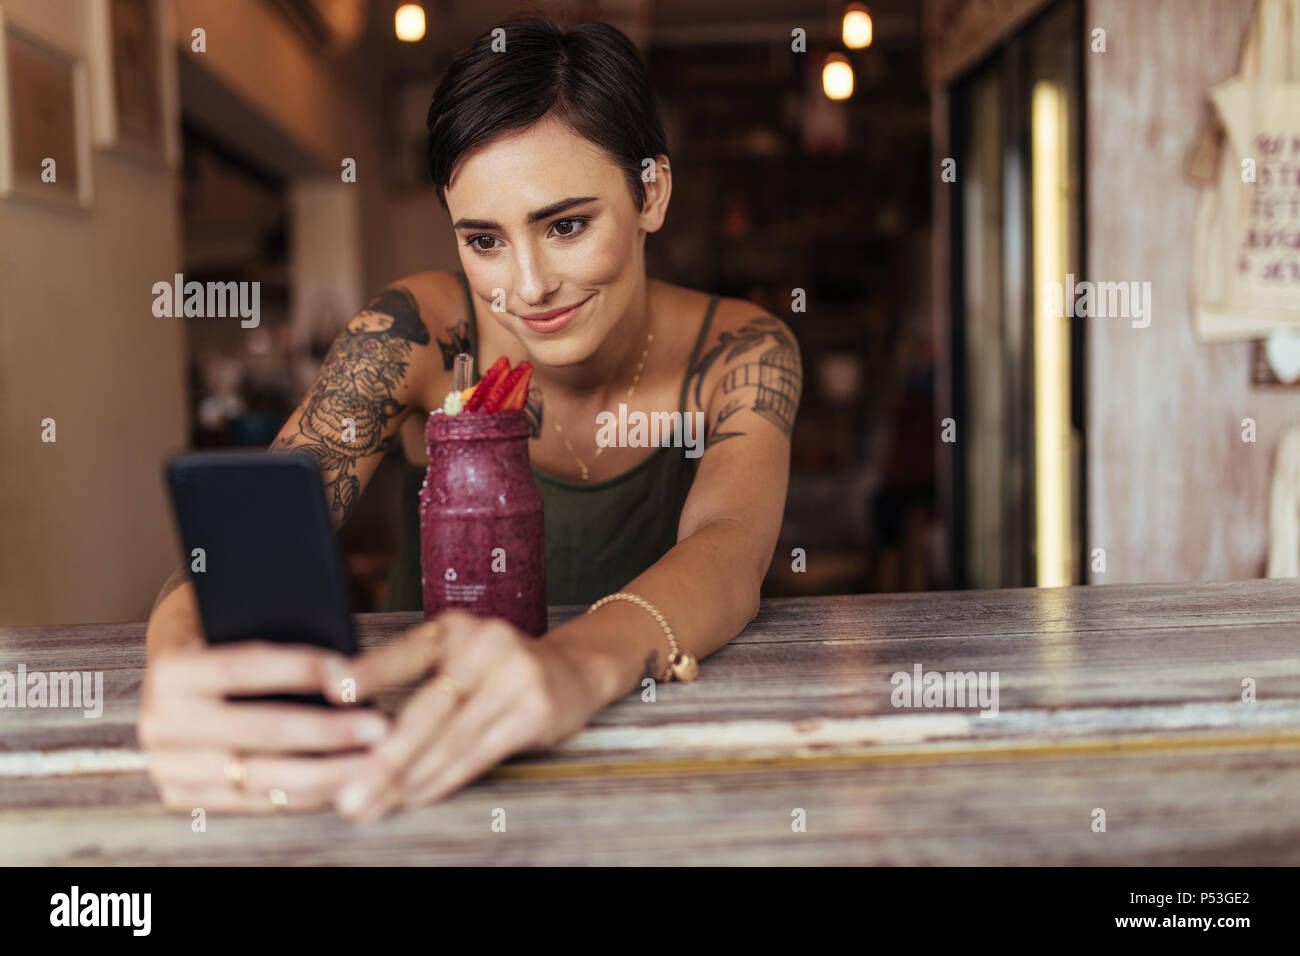 Woman taking a selfie with a smoothie placed in front of her using a mobile phone for her food blog. Food blogger shooting photos for her blog at home - Stock Image